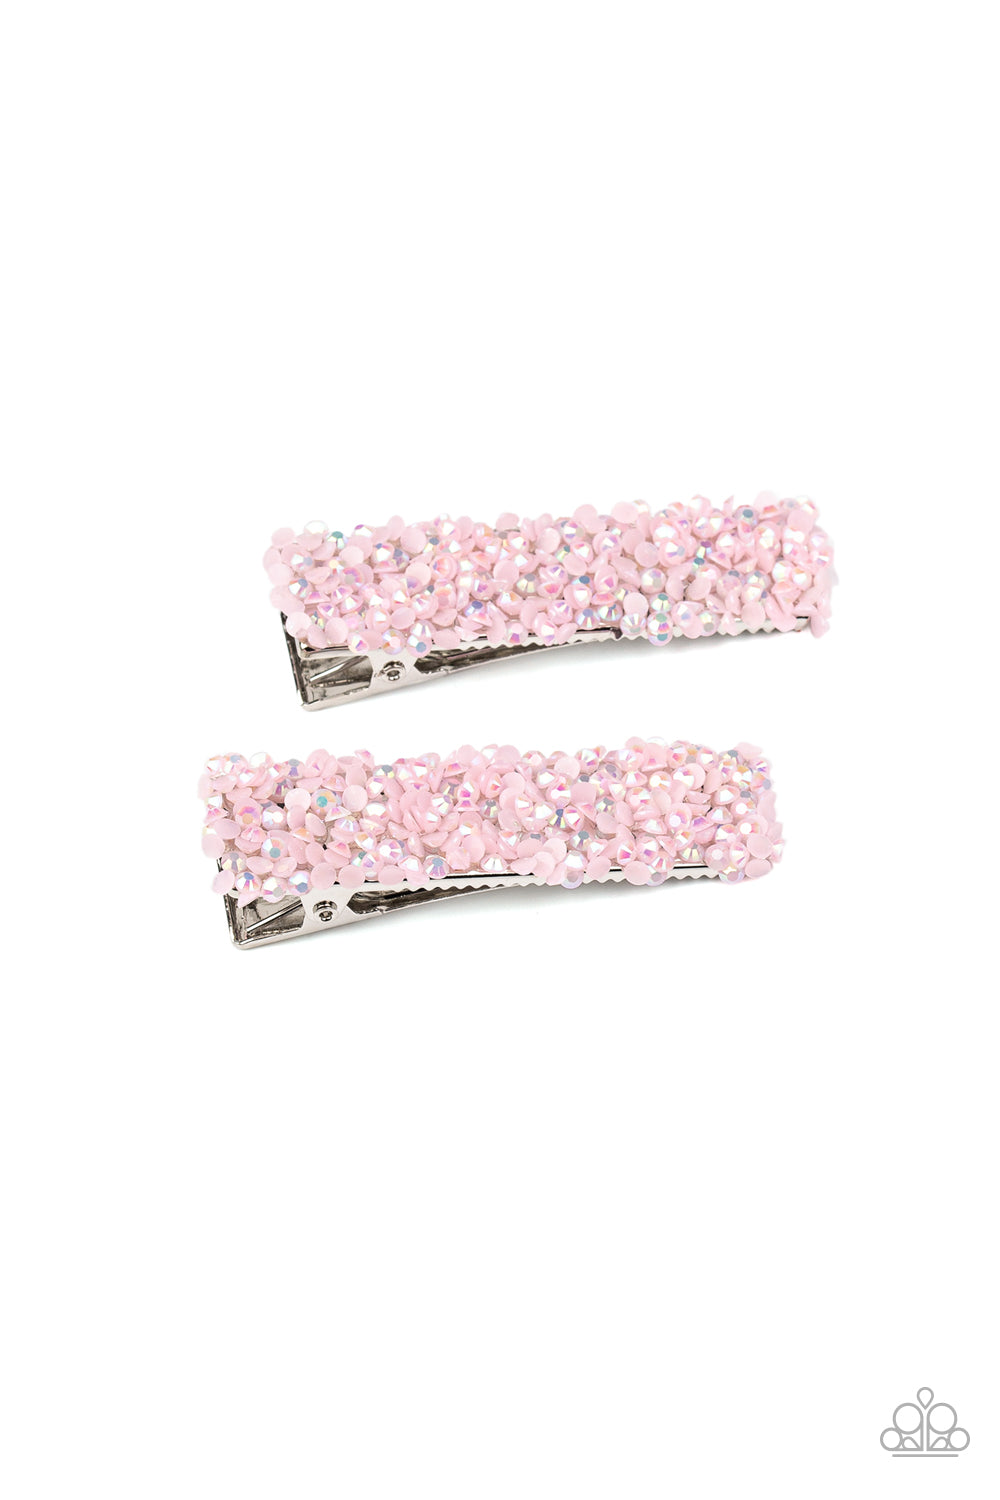 Paparazzi Accessories - HAIR Comes Trouble - Pink Hair Clip